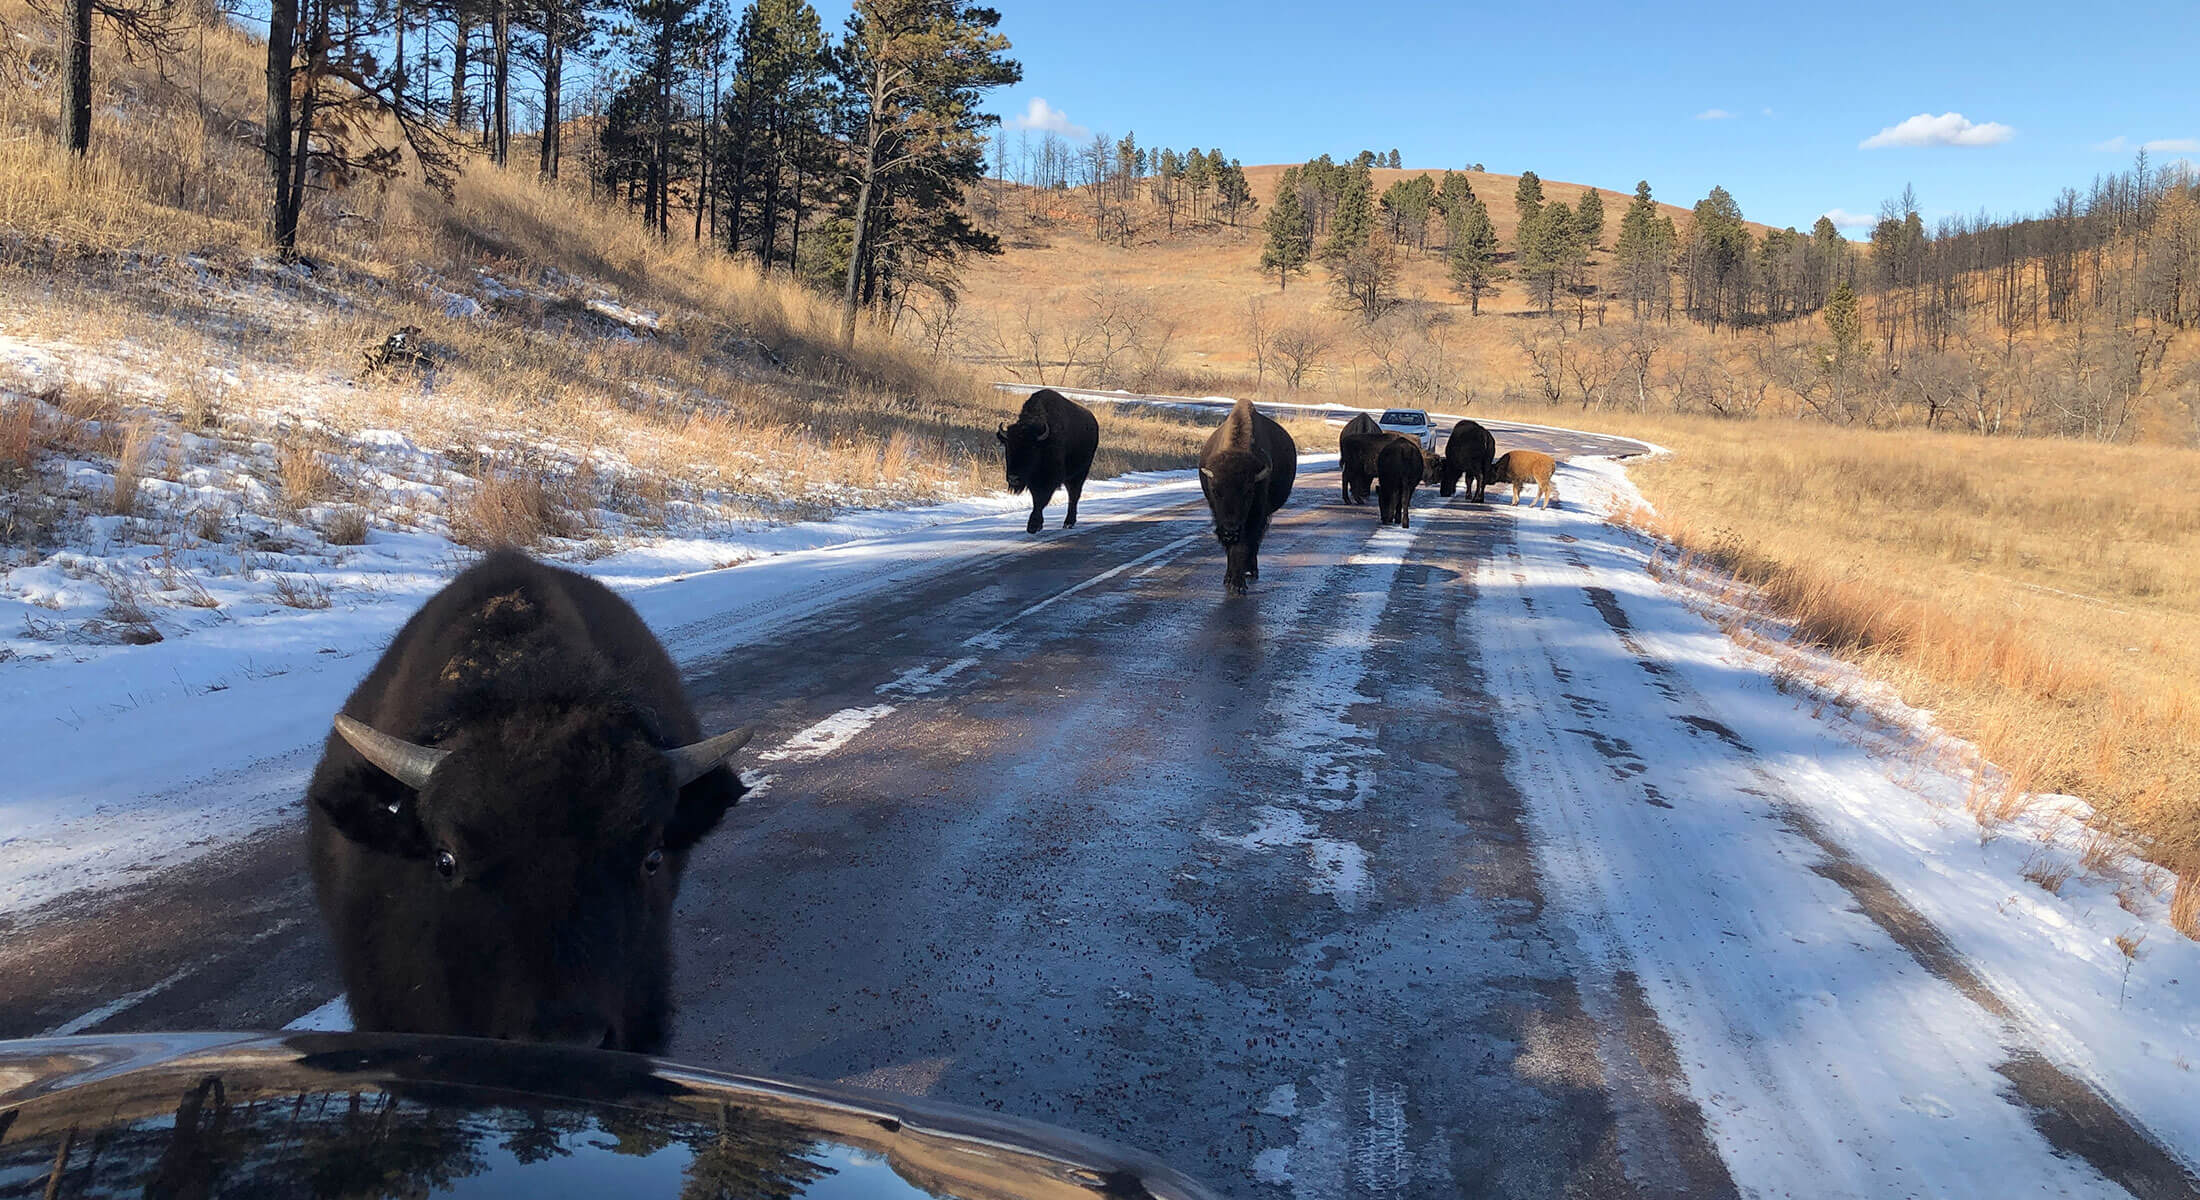 Bison on the road in Custer State Park